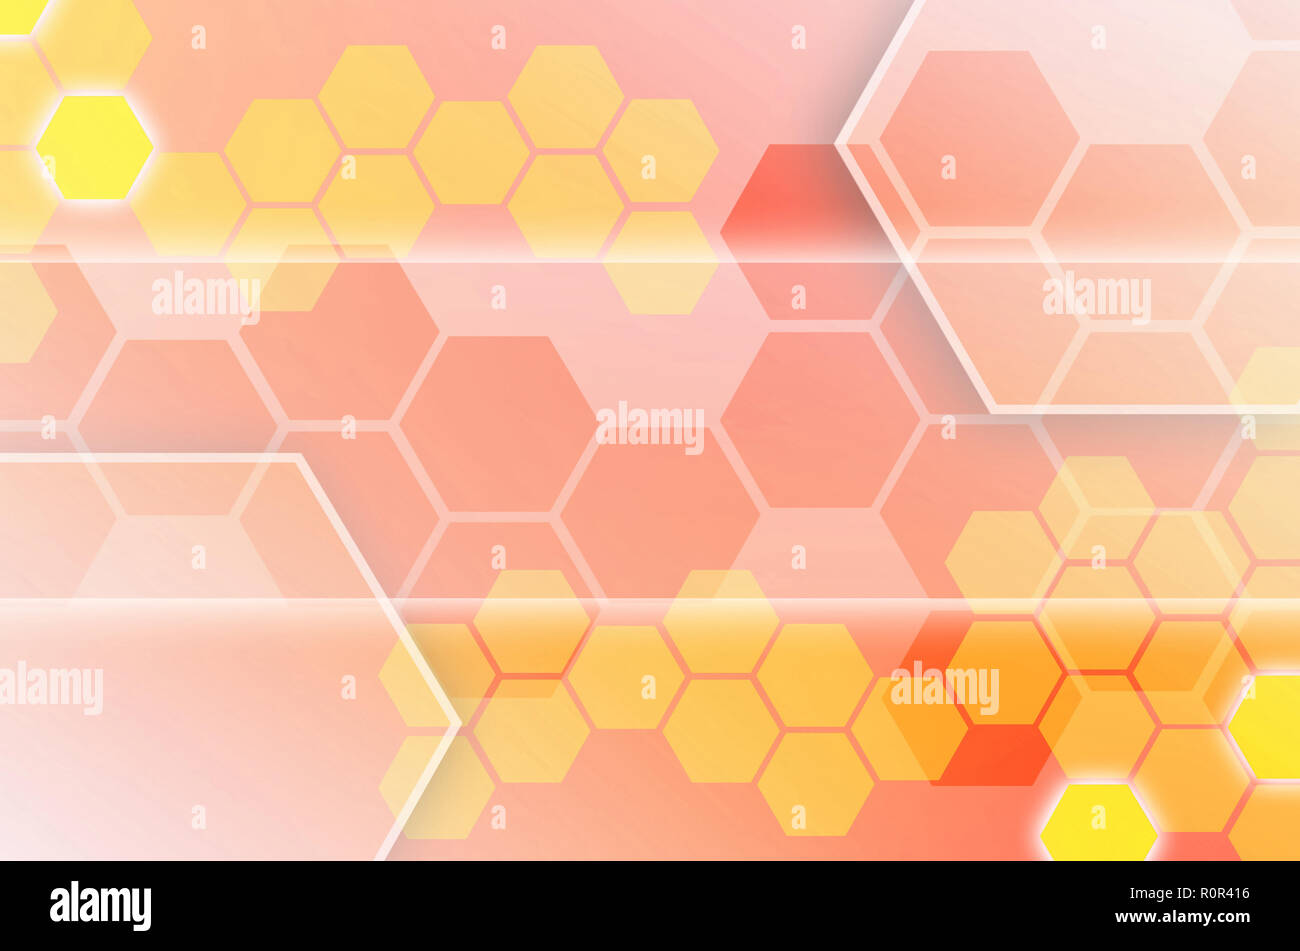 Abstract technological background consisting of a set of hexagons and other geometric shapes in orange color - Stock Image